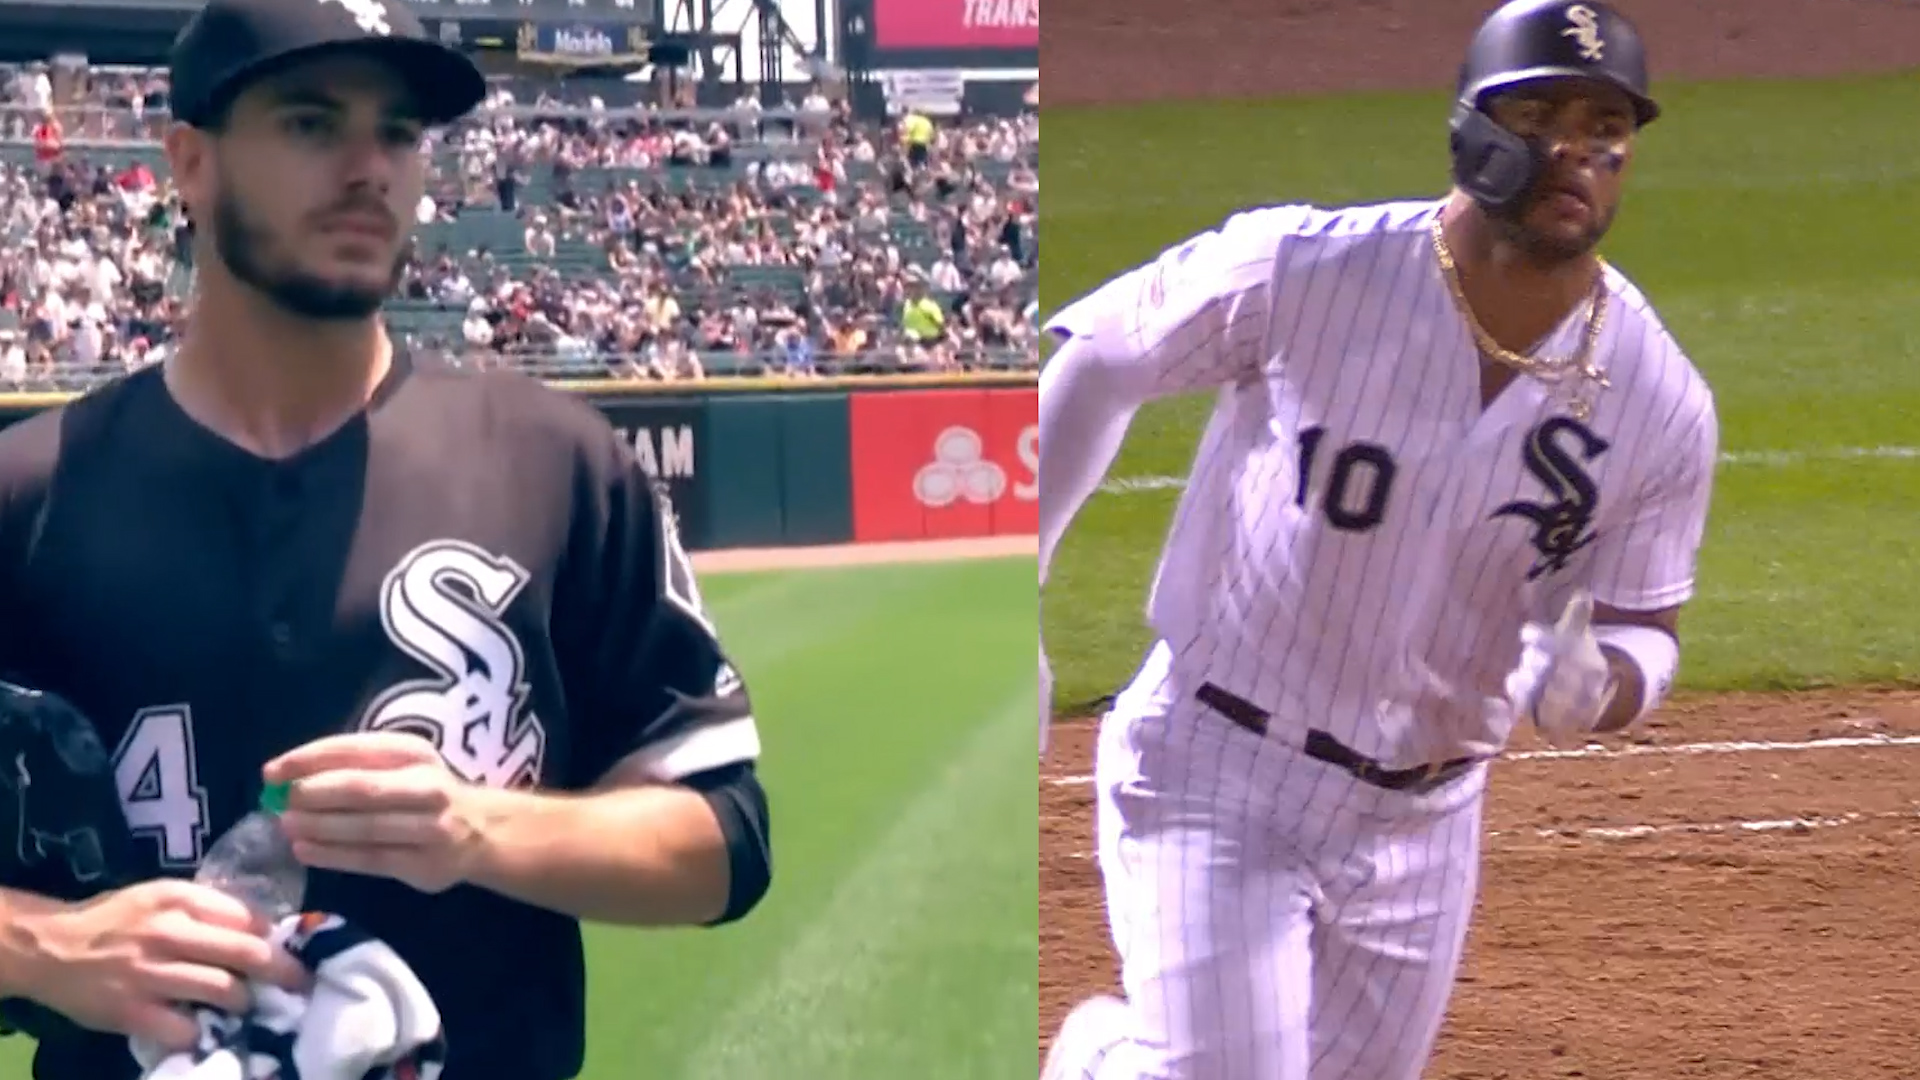 Top White Sox Moments: No. 5 - A special double-header